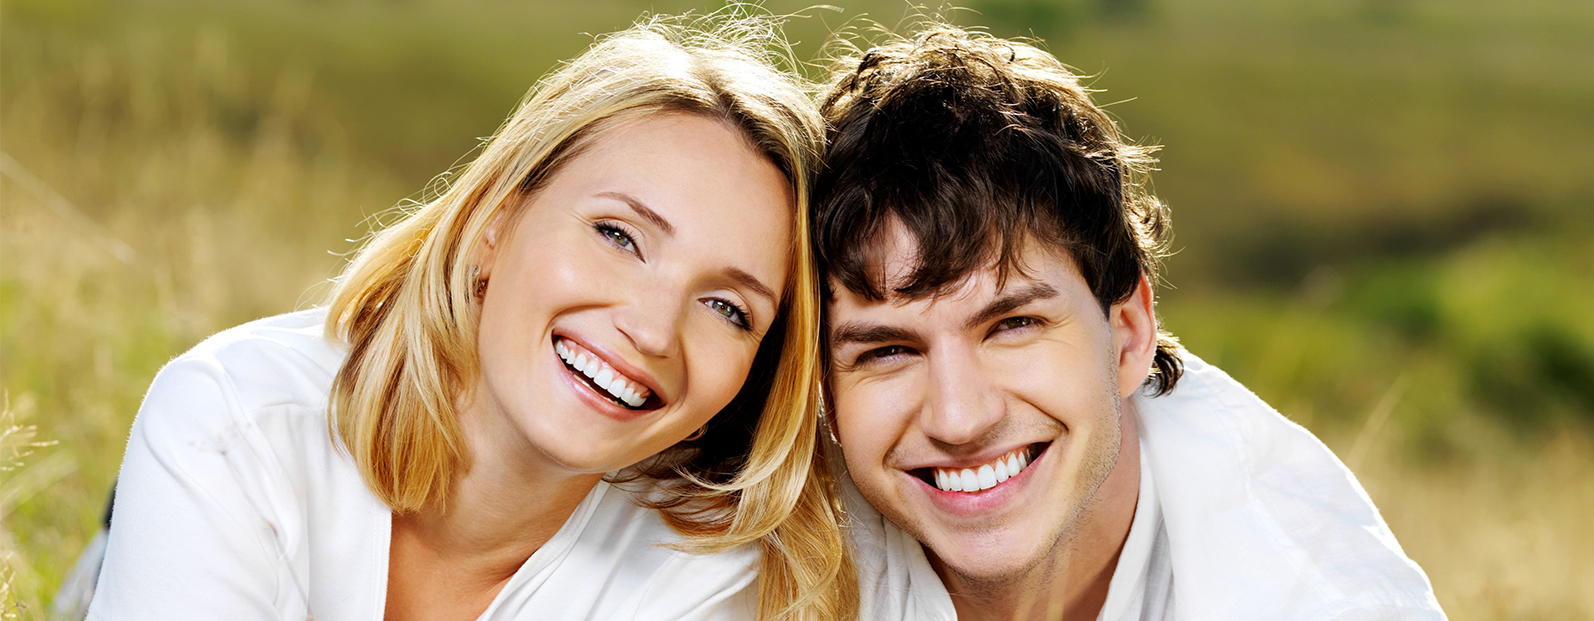 Cosmetic Dentistry in Homewood Alabama